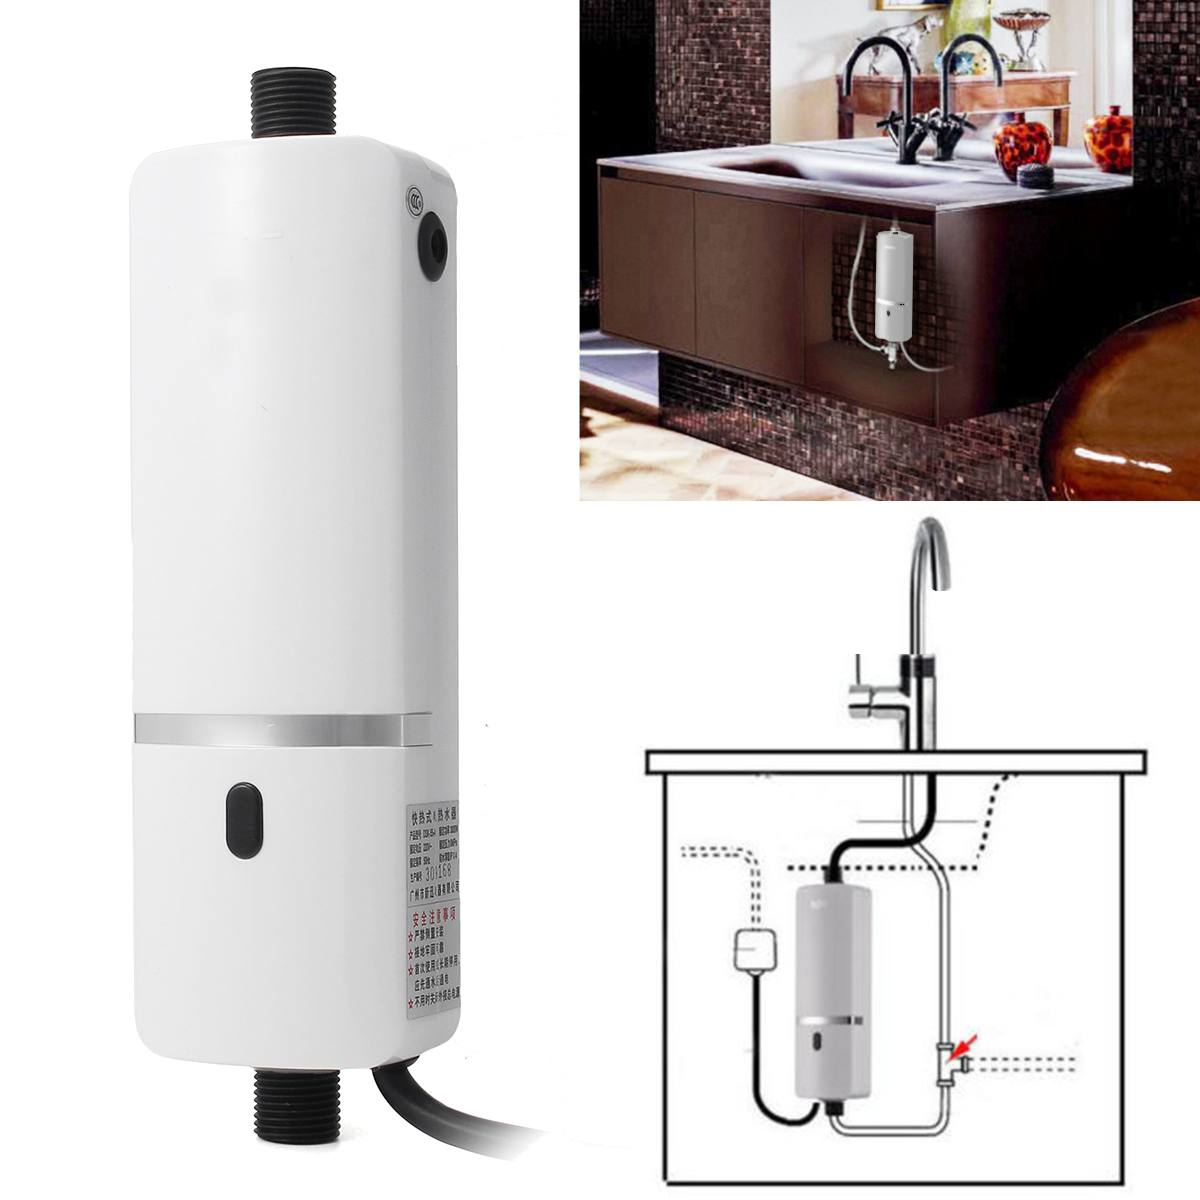 220 240V 3000W Instant Electric Tankless Water Heater Shower System Under Sink Tap Faucet  for Kitchen Bathroom Water Heater|Electric Water Heaters| |  - title=